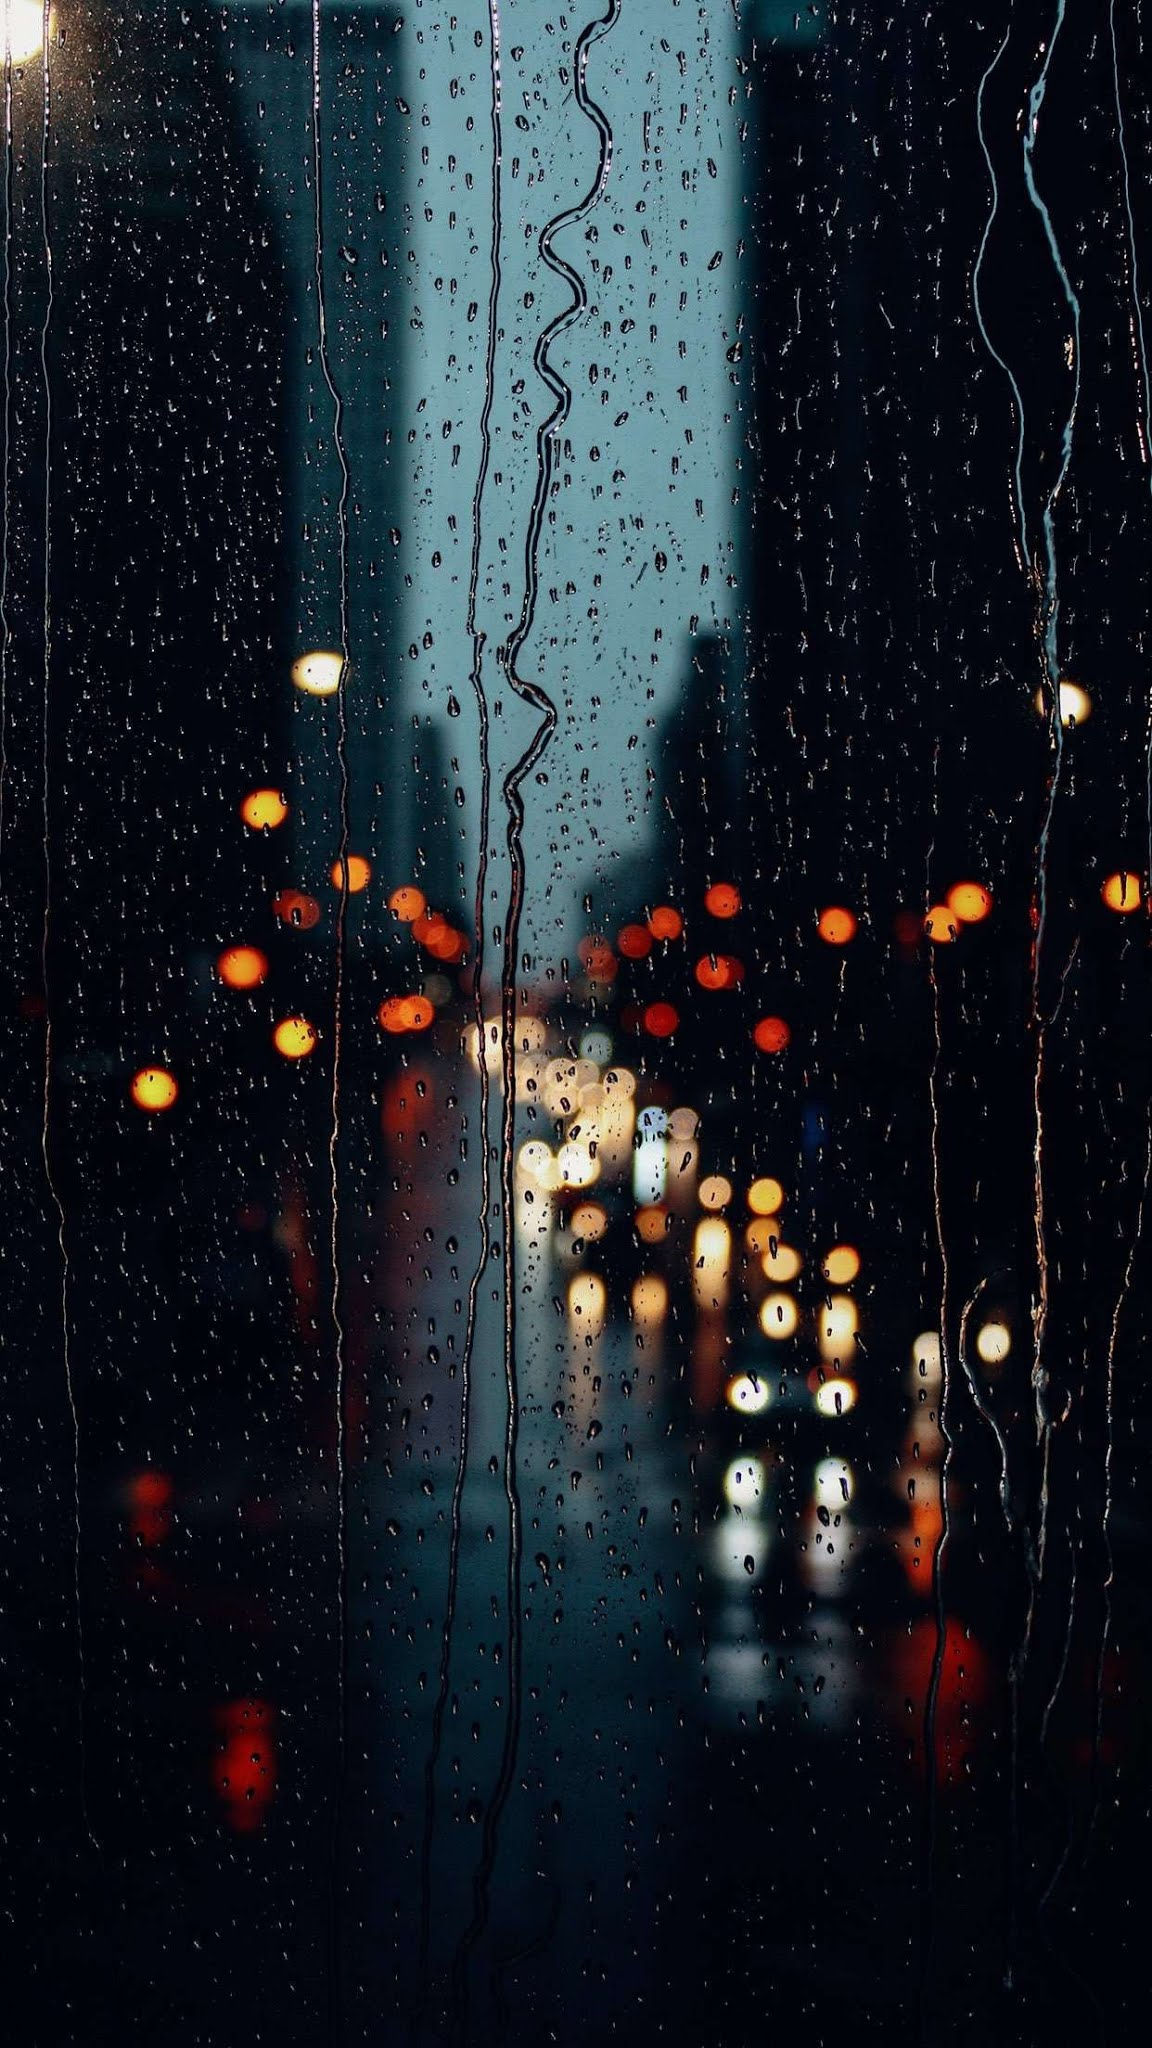 Rain drops on window glass mobile wallpaper